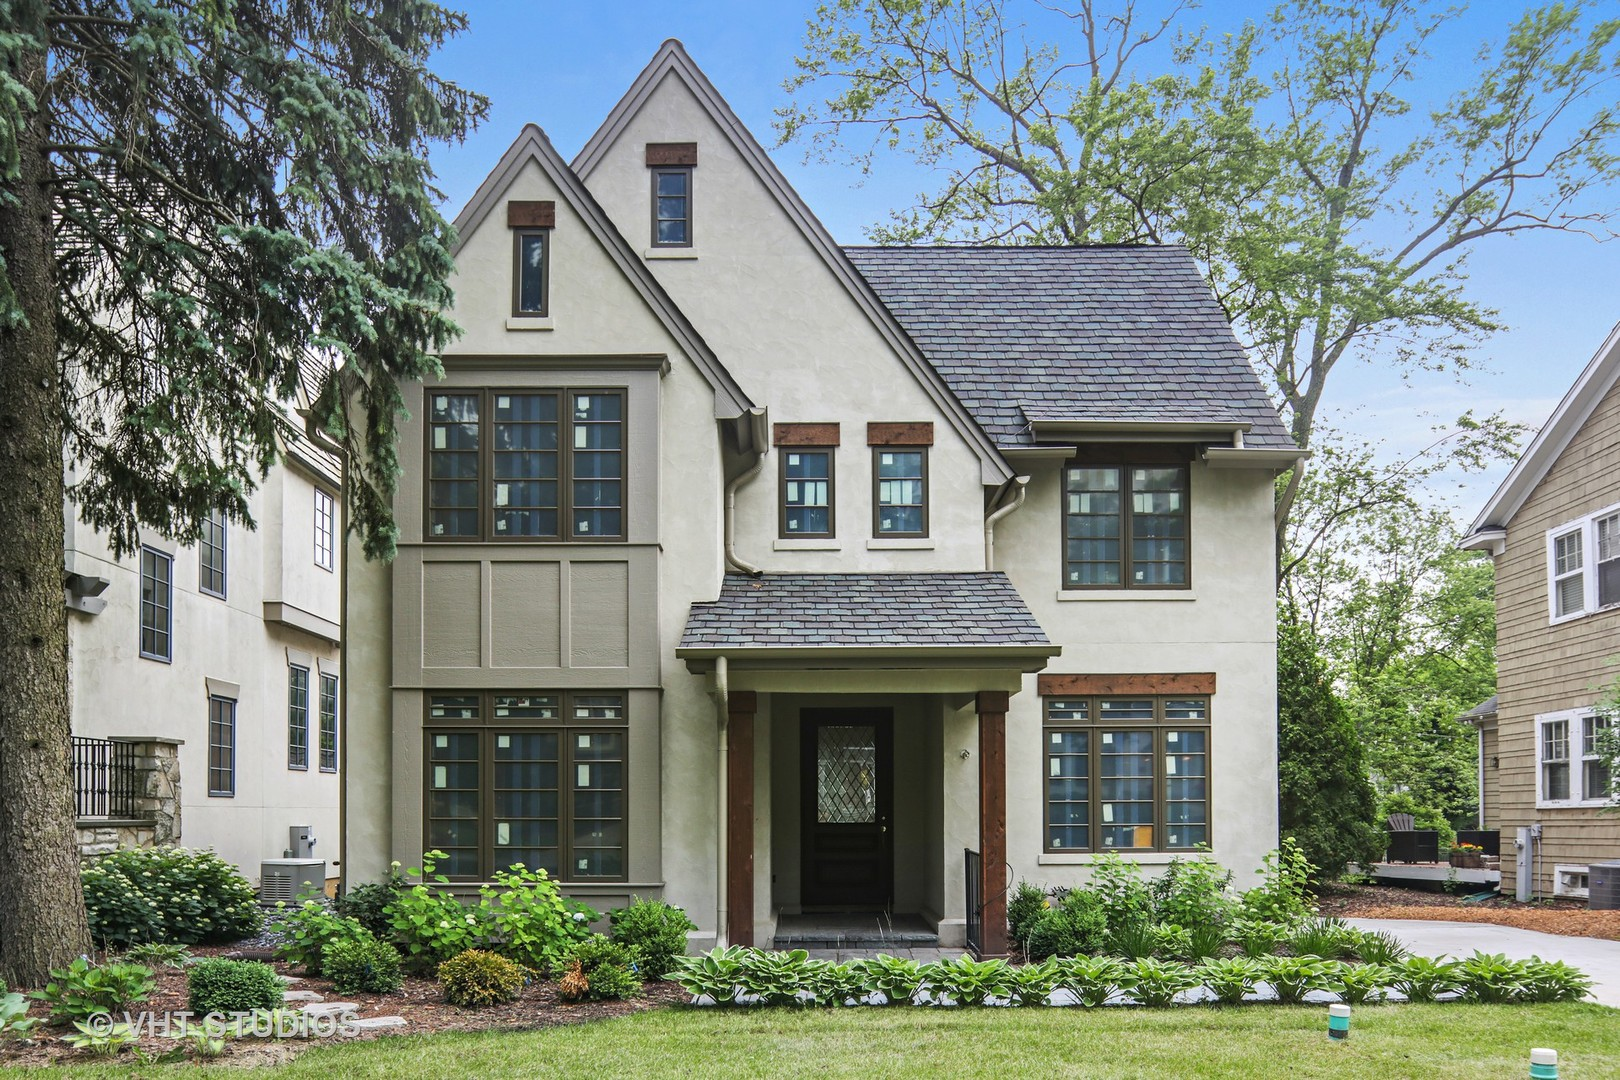 530 NORTH GRANT STREET, HINSDALE, IL 60521